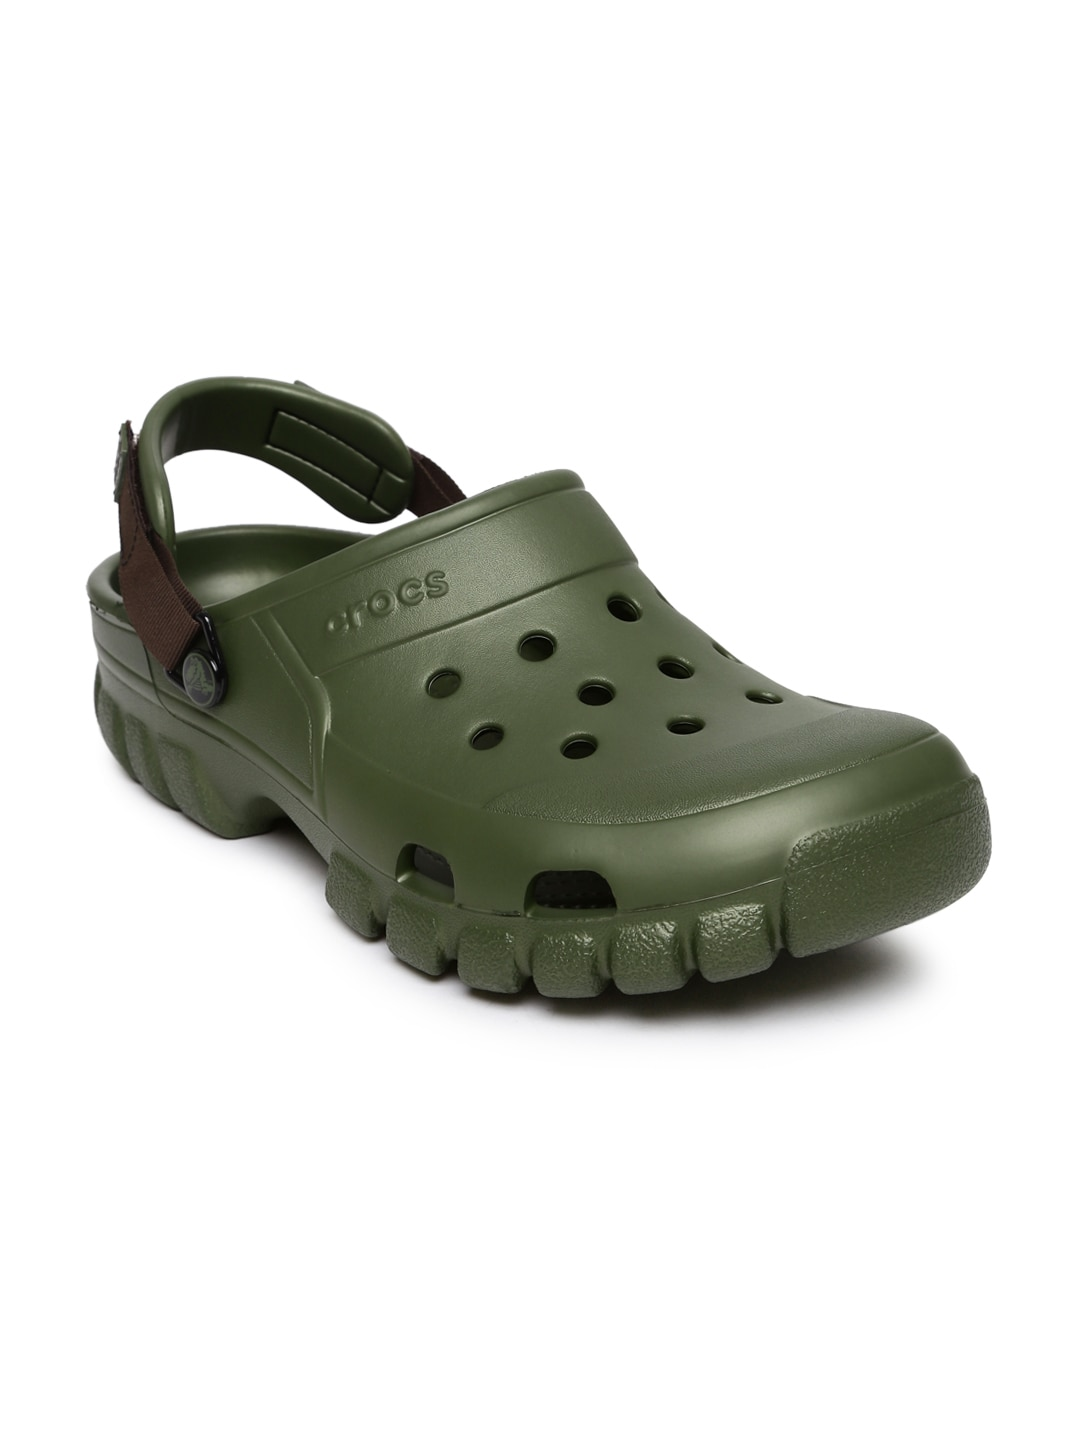 e2bf546dd337 Crocs Men Footwear - Buy Crocs Shoes and Sandals For Men Online in India